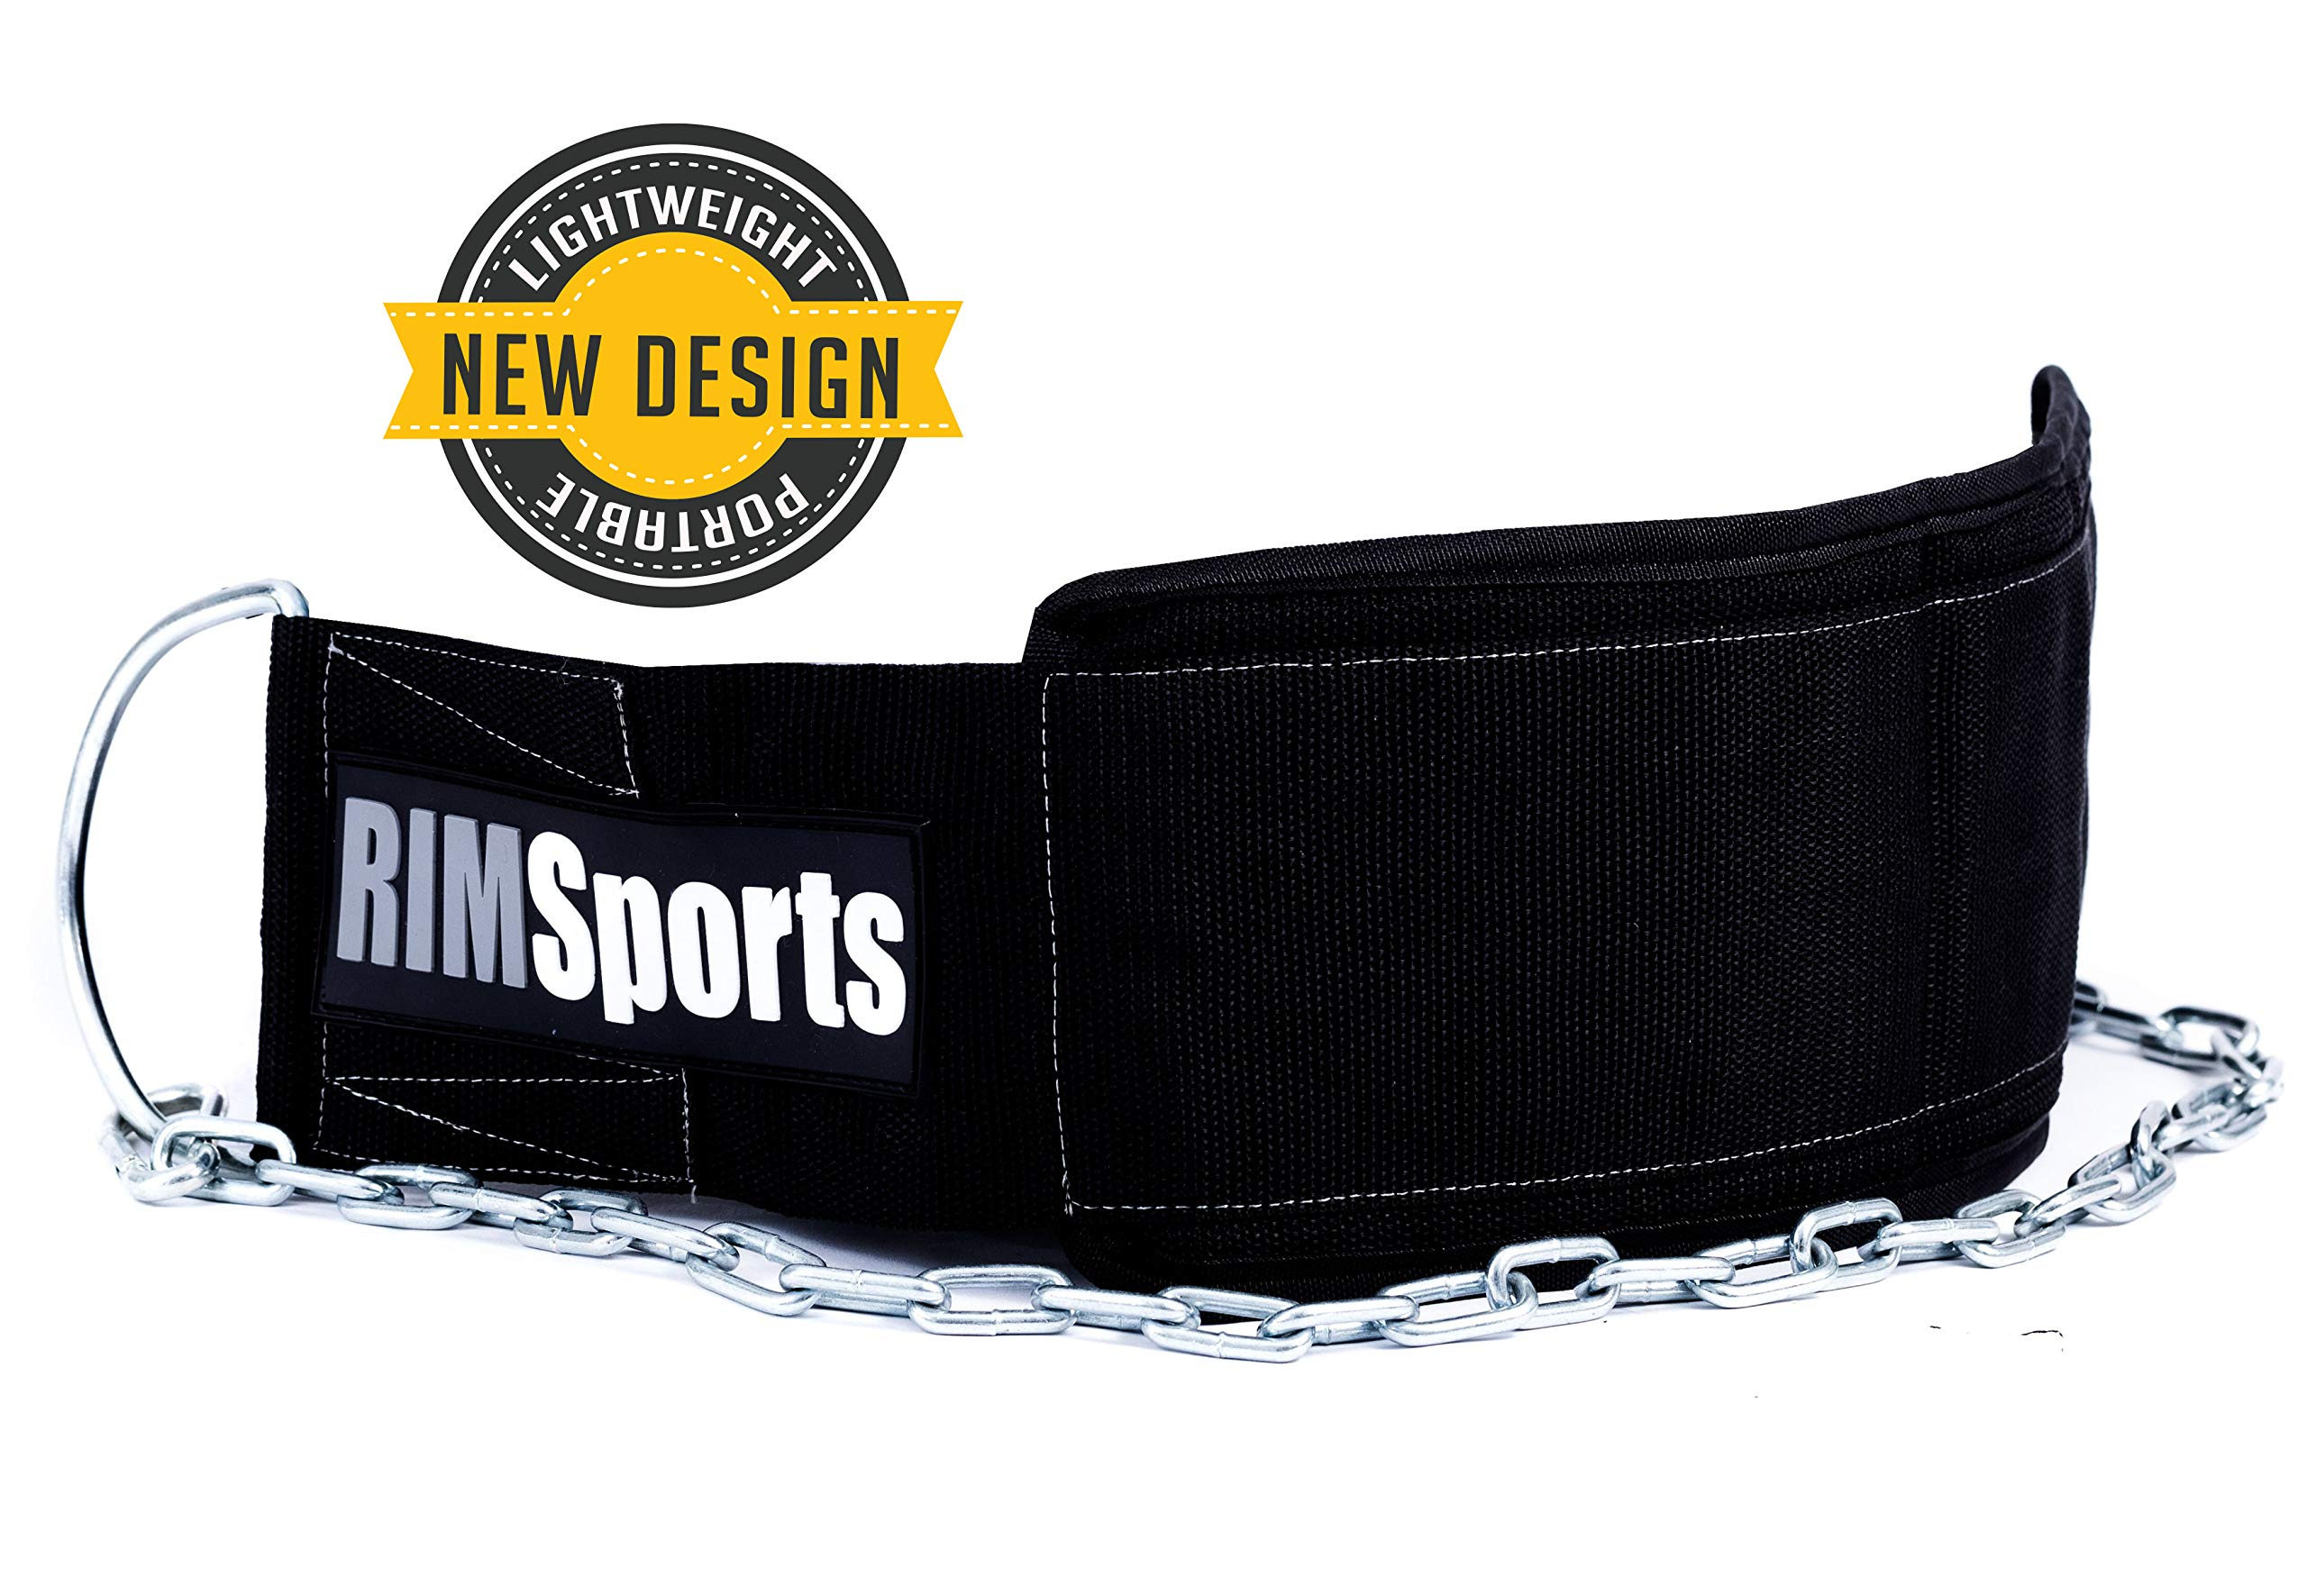 RIMSports Premium Lifting Belt with Chain - Best Weight Belt with Chain- Ideal Pull Up Dip Belt - Weightlifting for Dip & Pull Up, Chin Up Belt - Premier Dipping Belt for Men & Women (Black/White)